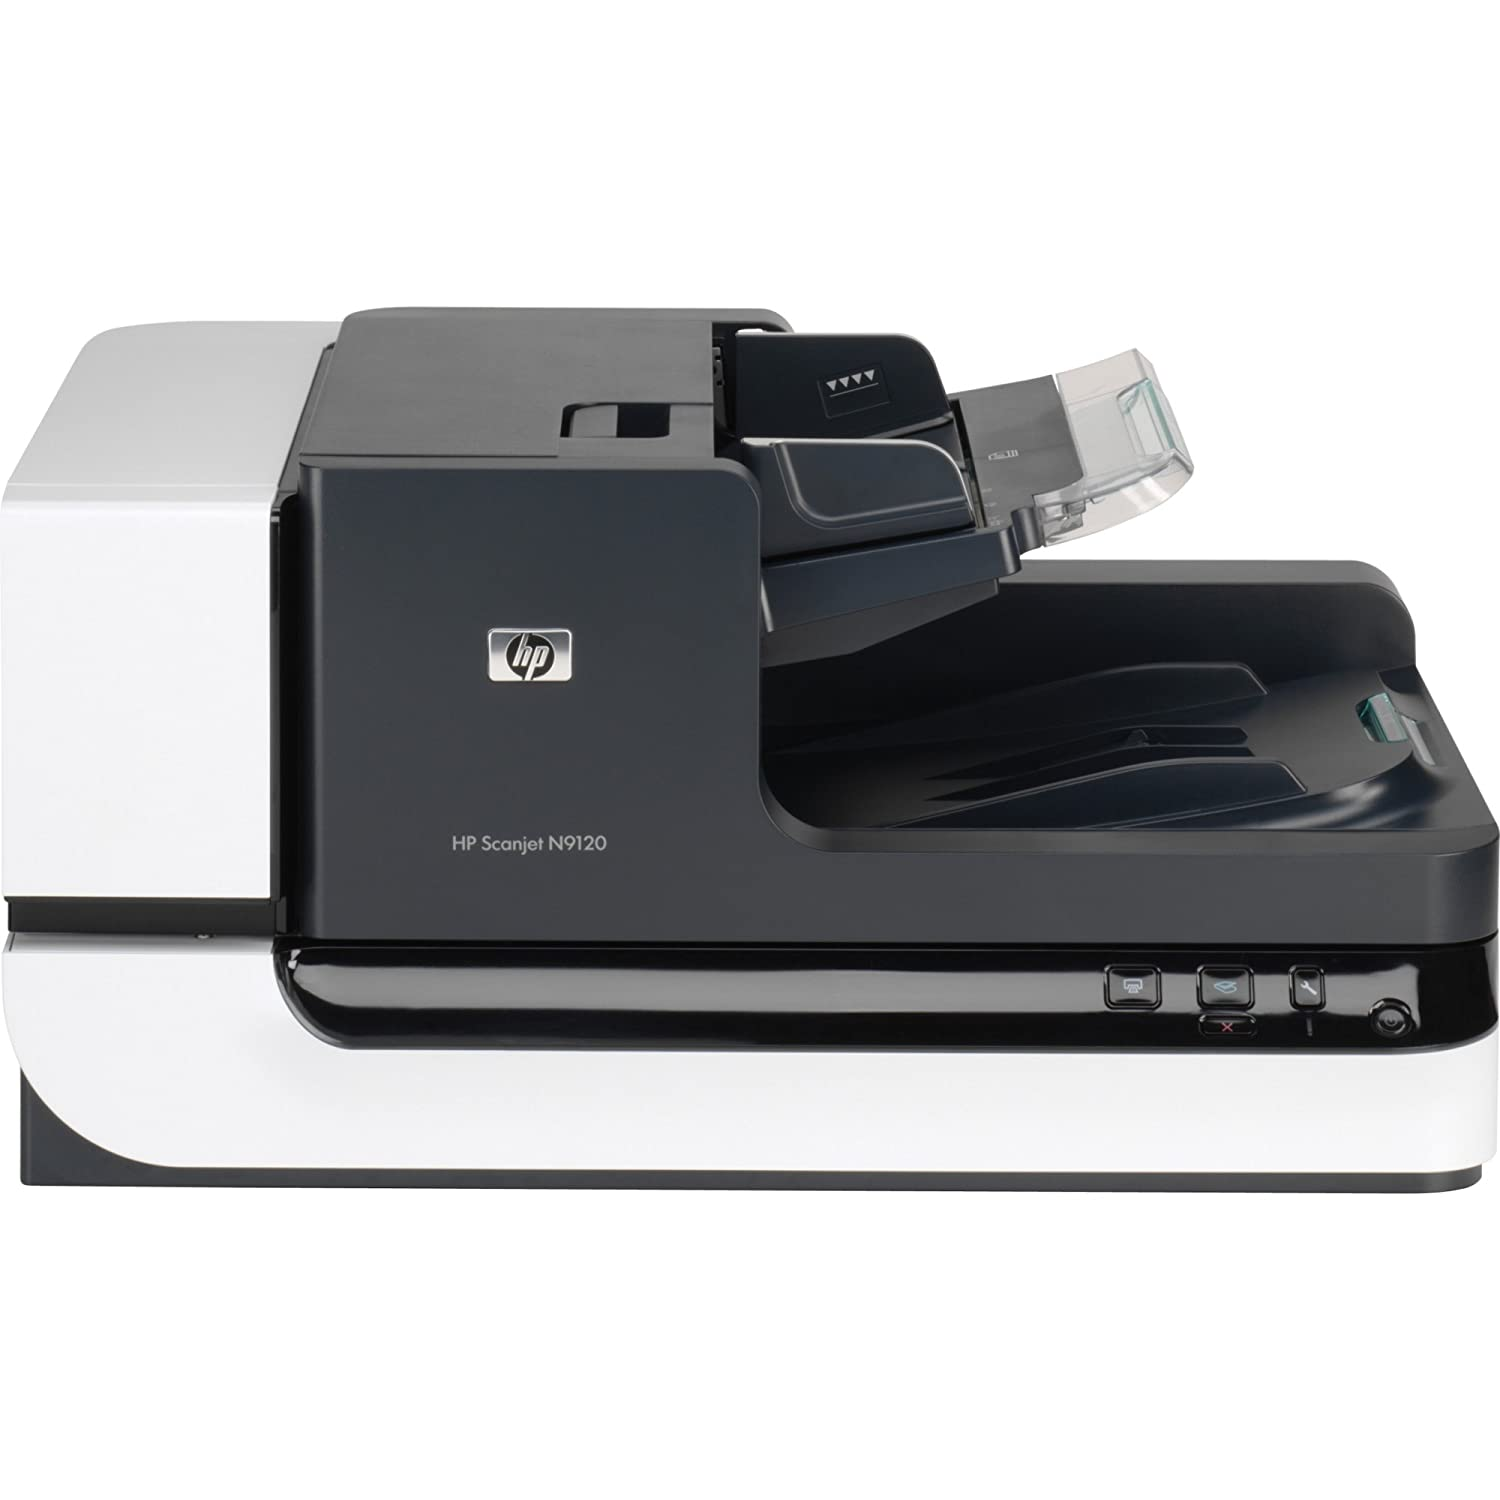 HP Scanjet N9120 Flatbed Scanner - 600 dpi Optical L2683B#201